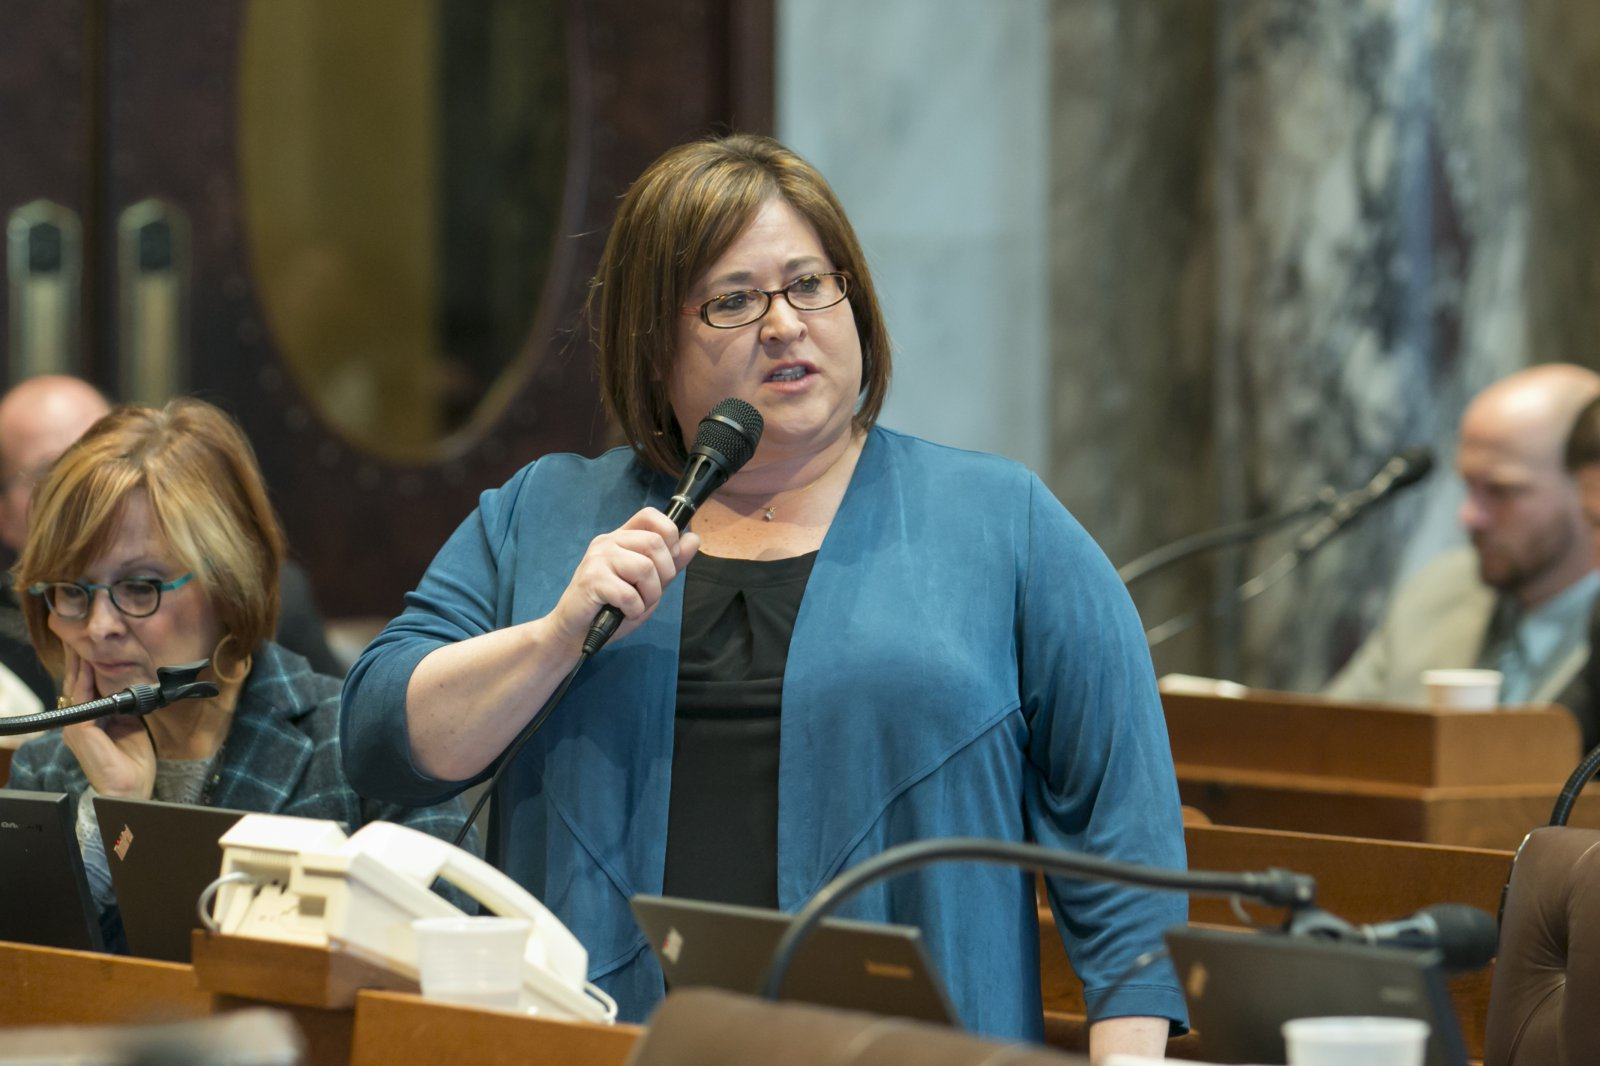 On Equal Pay Day, Rep. Subeck Calls for Action to Close the Gender Wage Gap